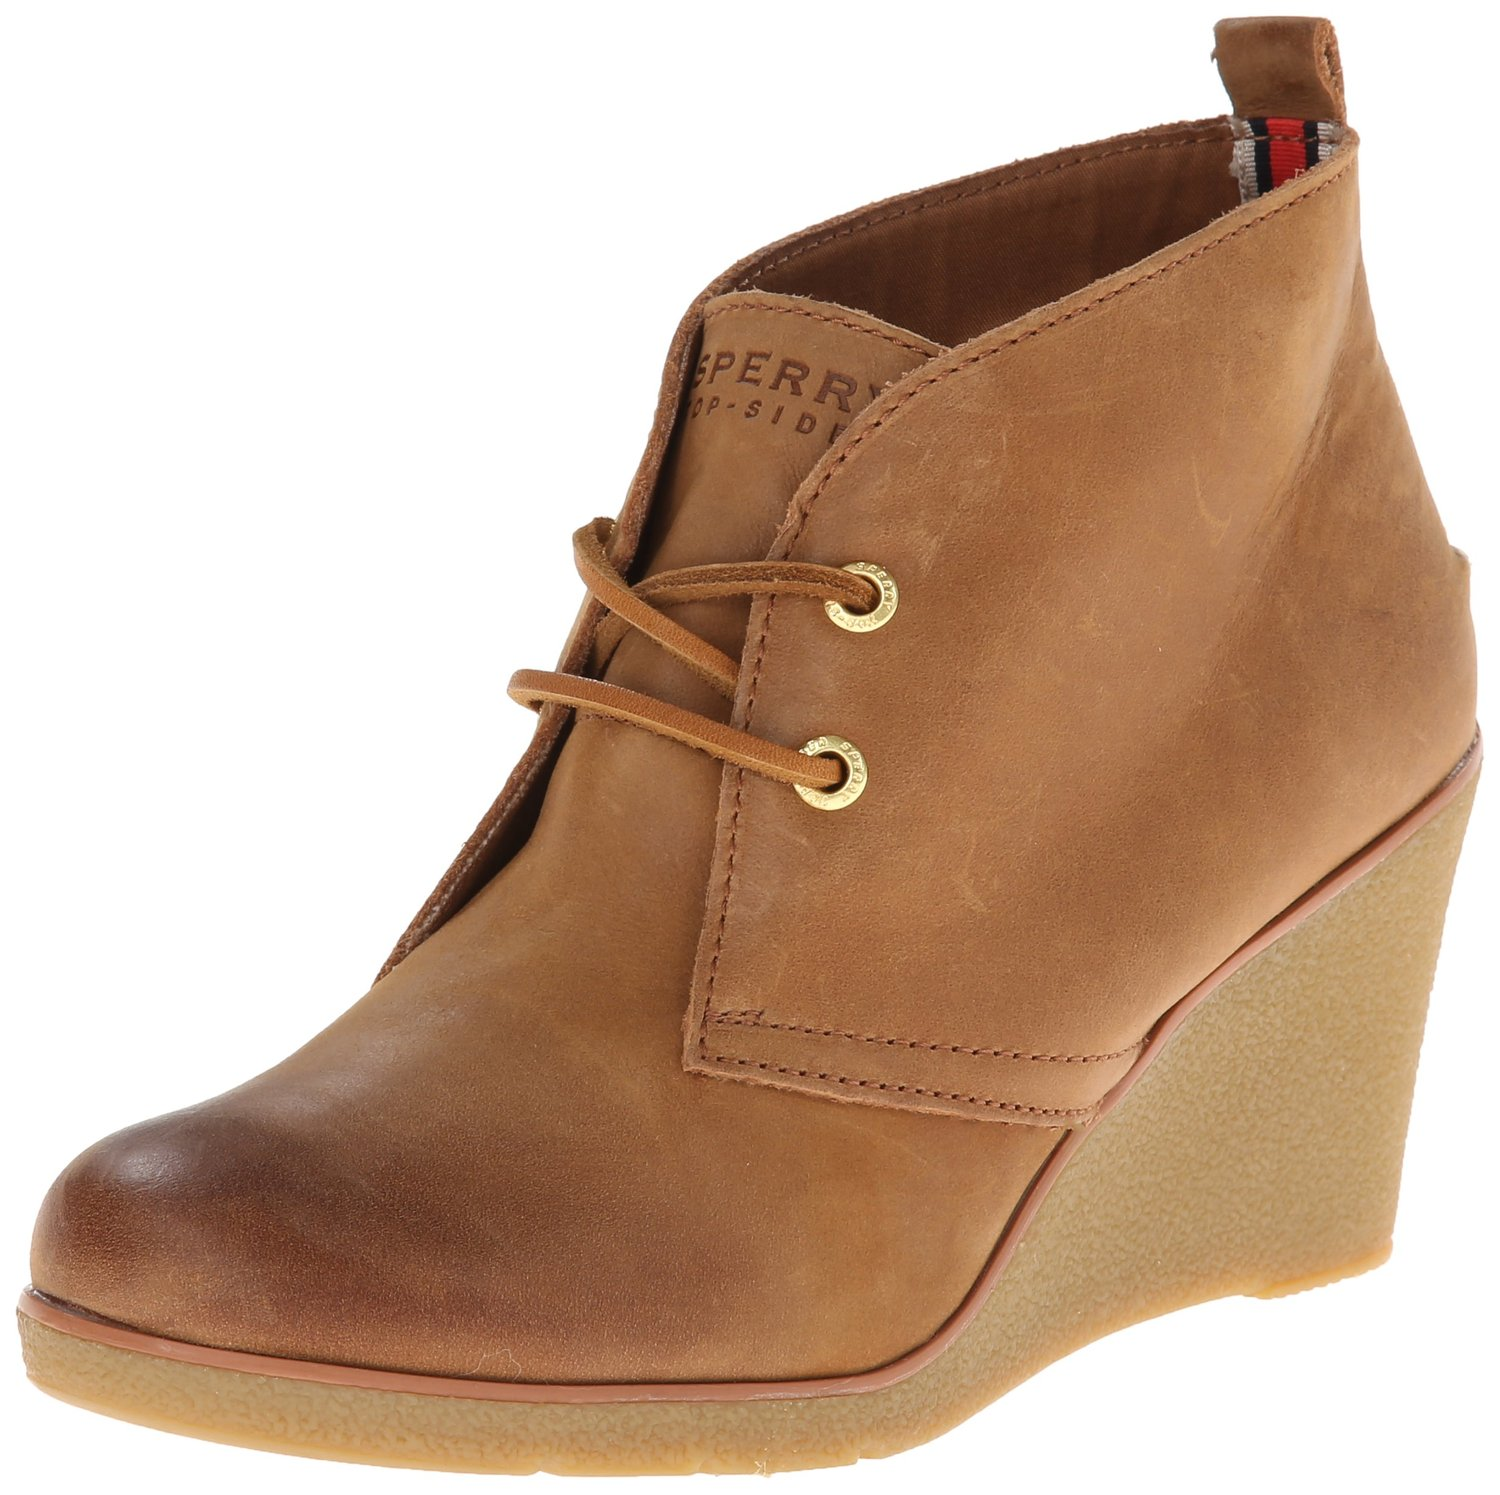 sperry top sider harlow burnished wedge